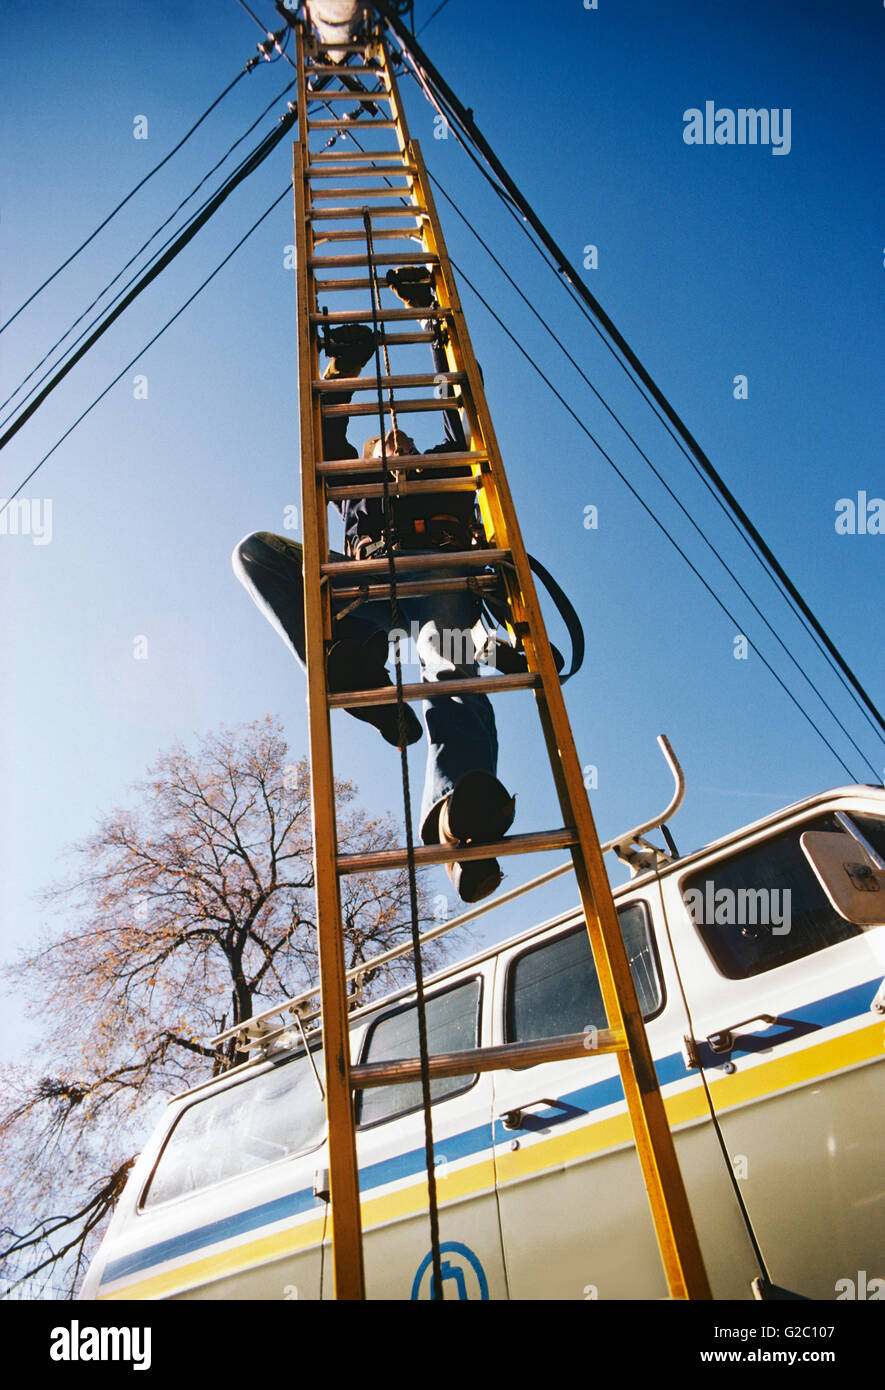 Male utility worker climbing ladder to access overhead power & communication wires - Stock Image